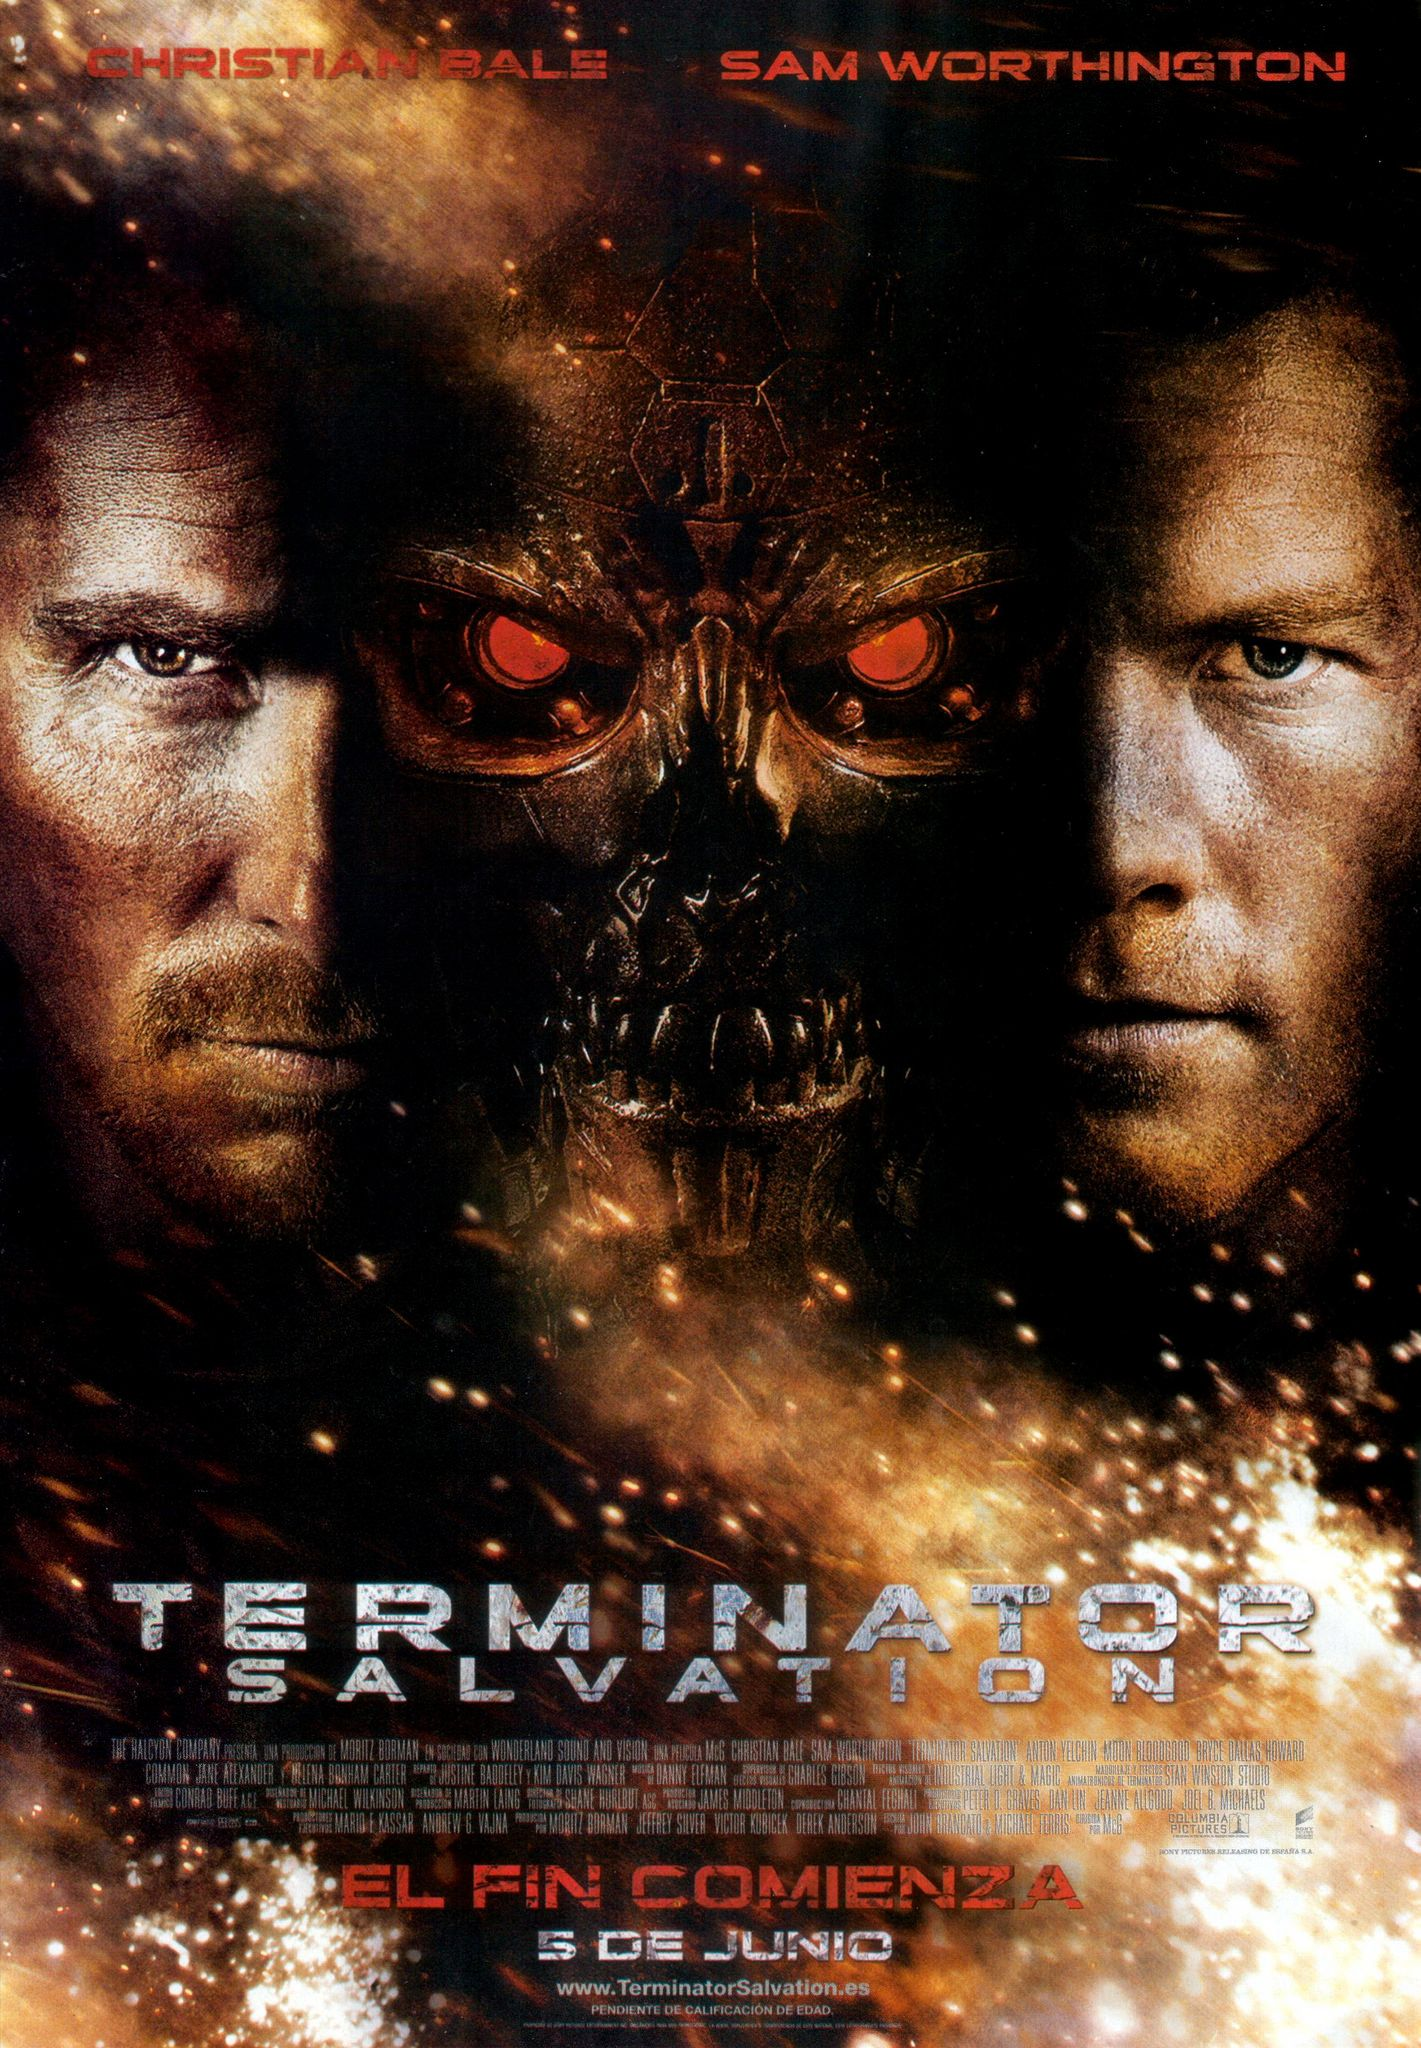 Terminator salvation 2009 cine talent fantasy life cultura terminator salvation 2009 thecheapjerseys Image collections